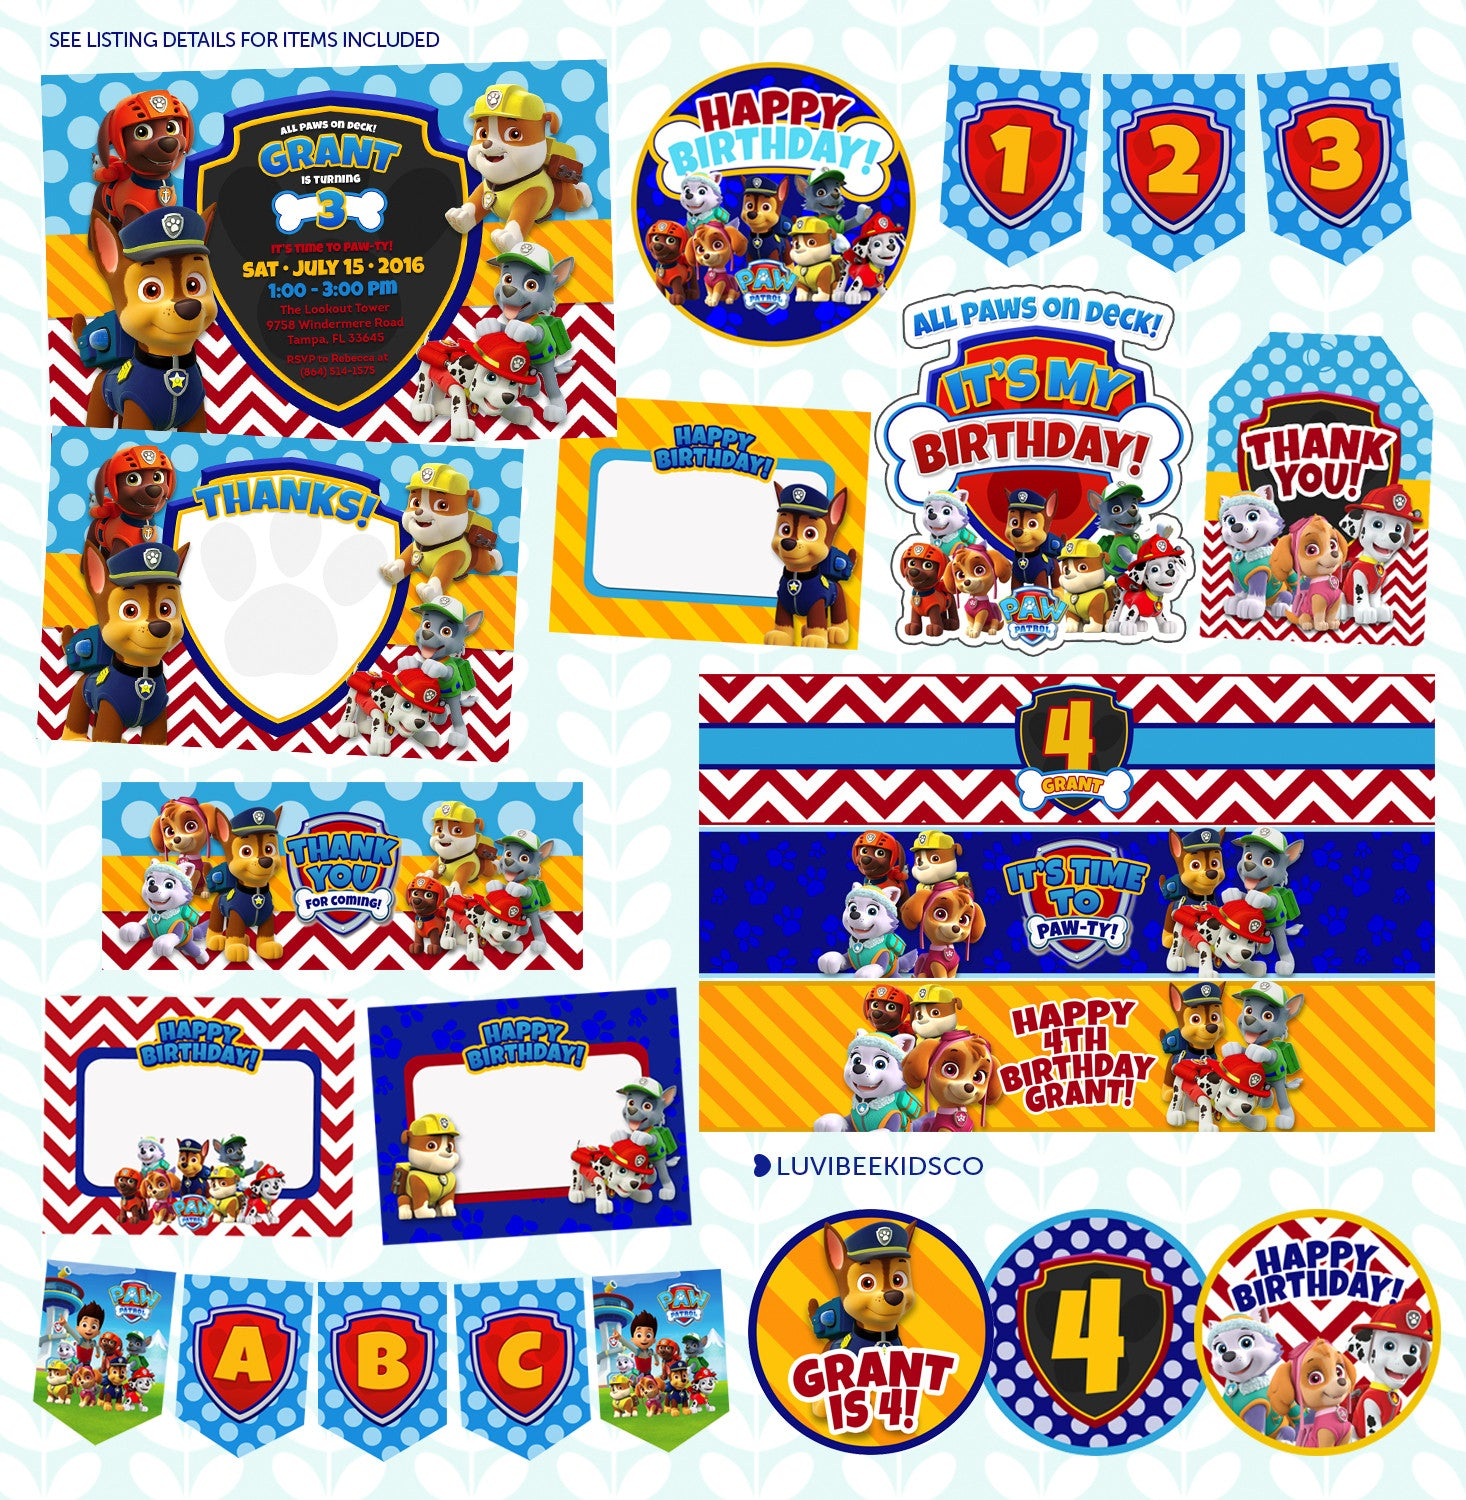 picture regarding Paw Patrol Printable Pictures identify Paw Patrol Birthday Invitation - Printable Birthday Get together Pack - Excellent Relevance!